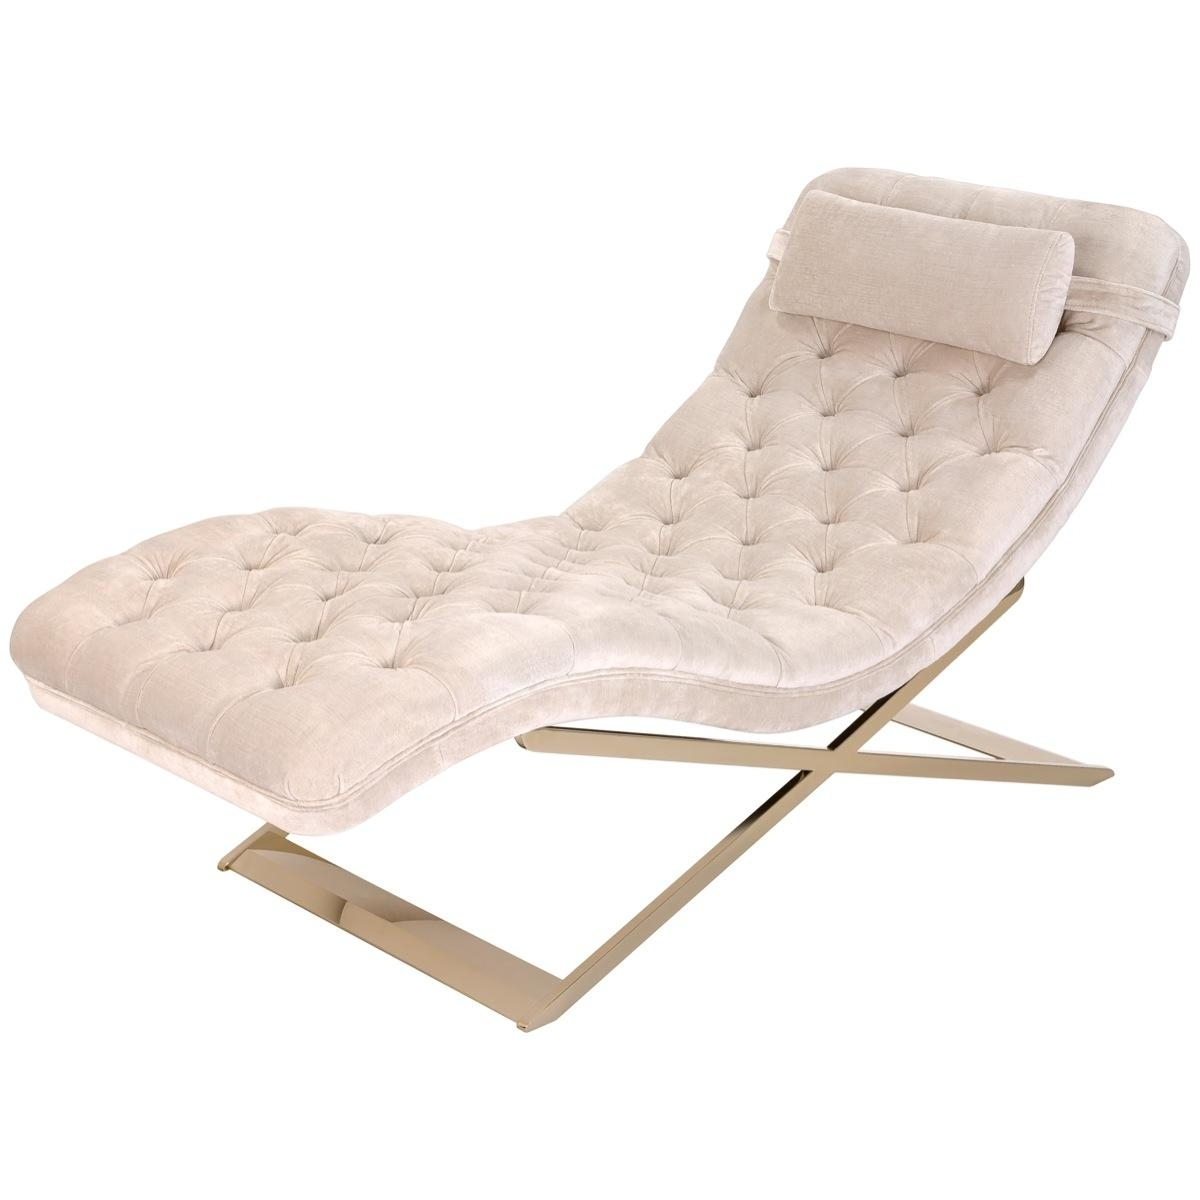 Most Current Upholstered Chaise Lounge Chairs Intended For Nampa Upholstered Chaise Lounge Chair – Safavieh Couture (View 4 of 15)